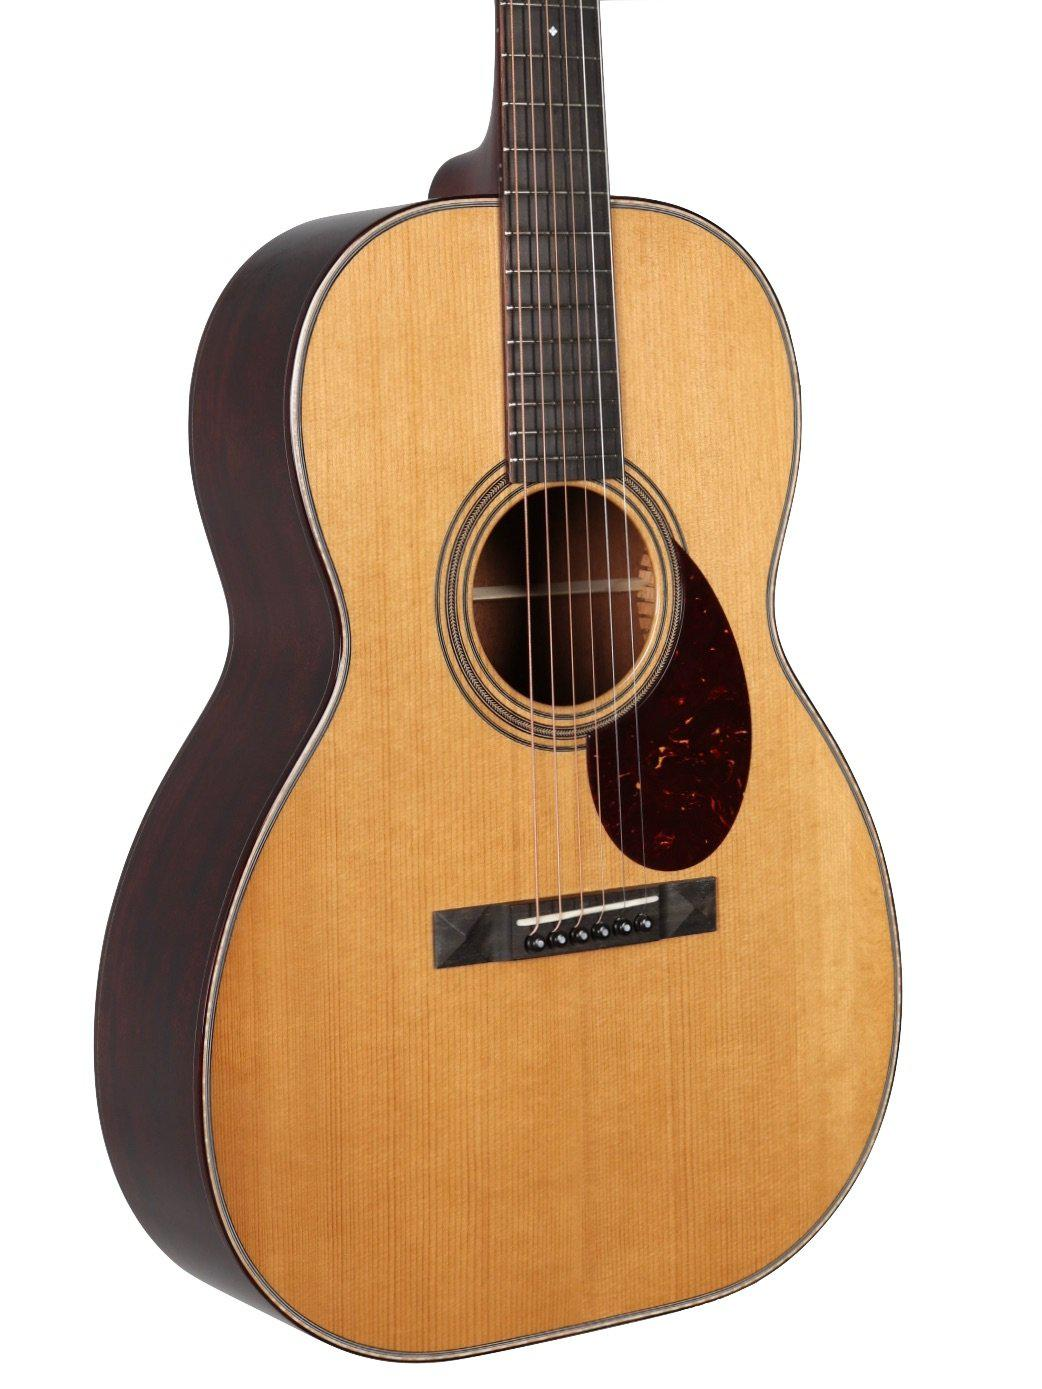 Larrivee L-09 12 String Indian Rosewood Pre-Owned #113030 - Larrivee Guitars - Heartbreaker Guitars